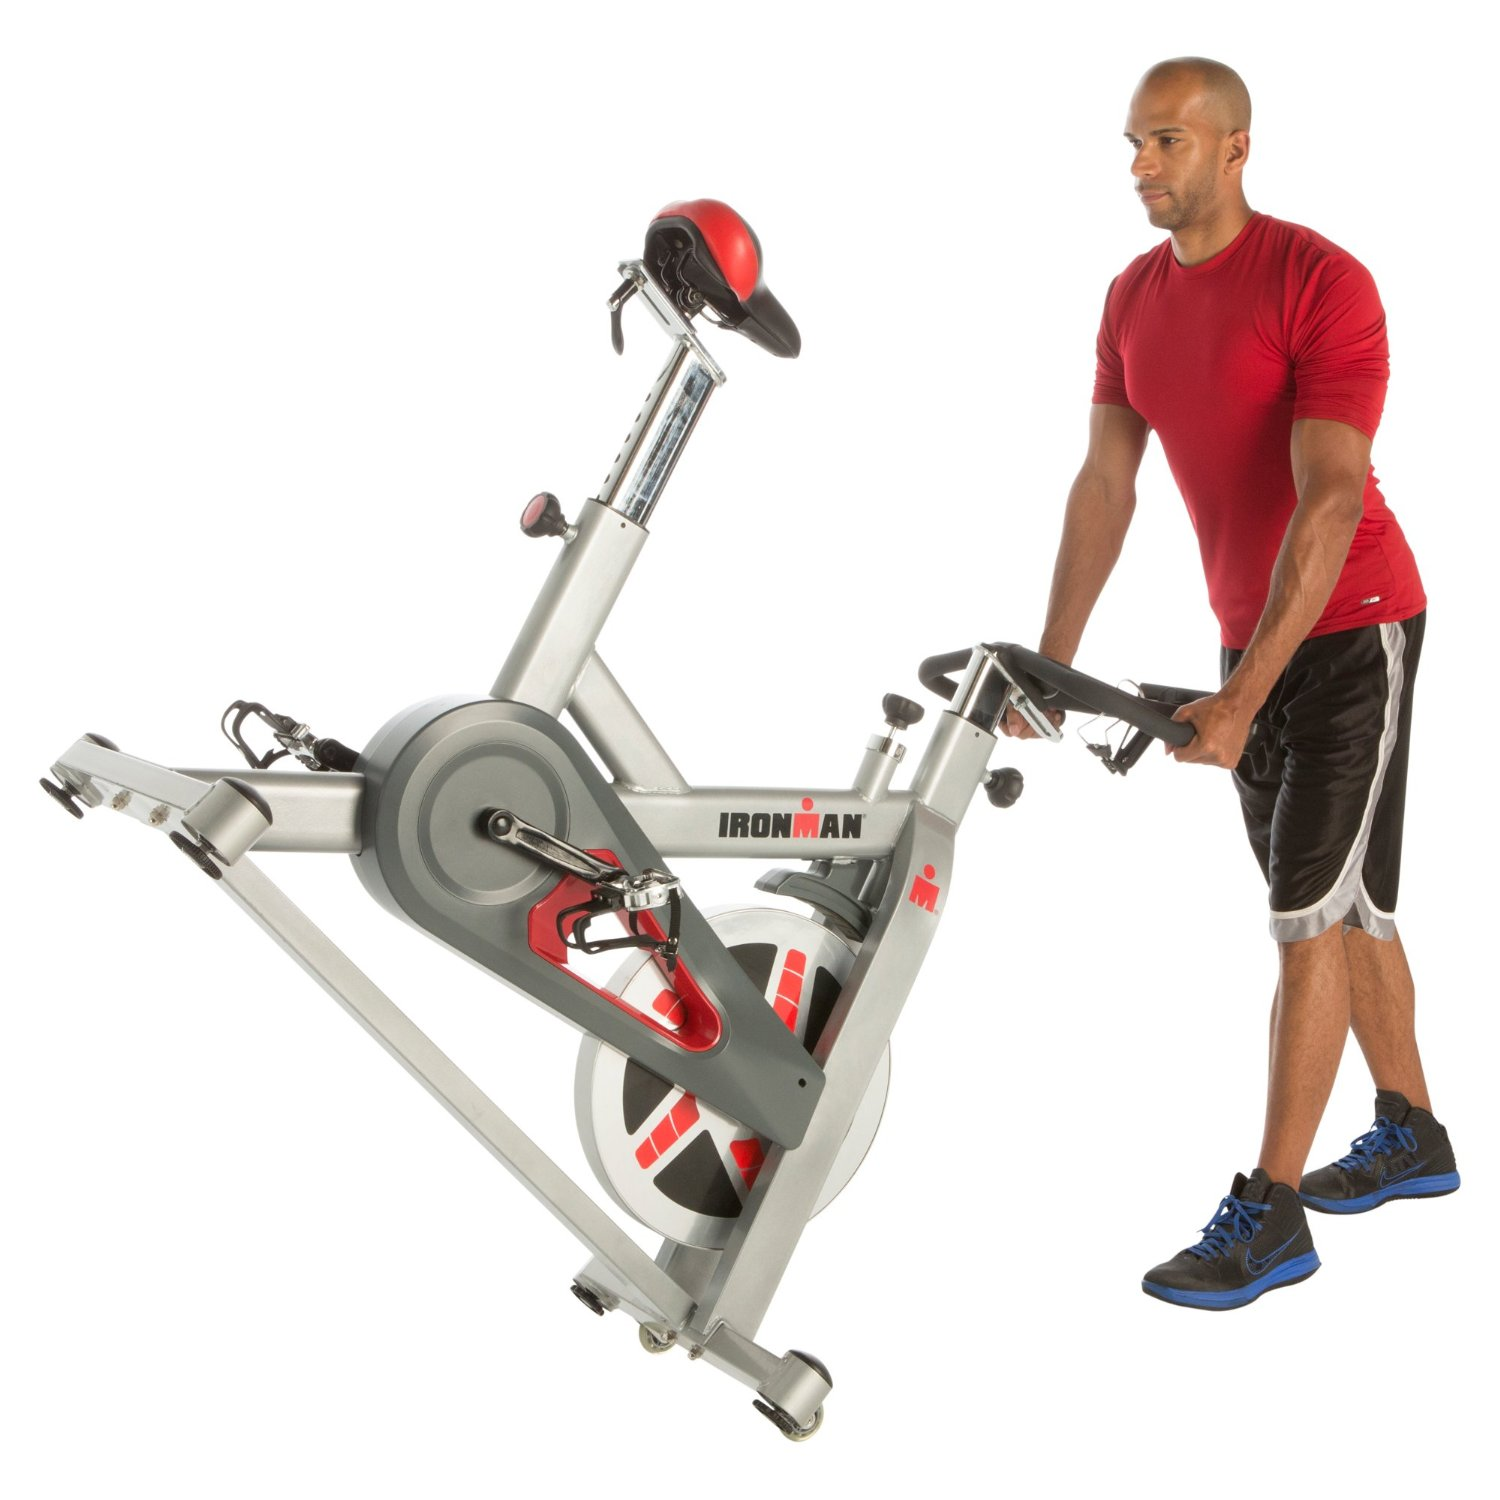 Ironman H-Class 520 Magnetic Tension Training Cycle Review ...